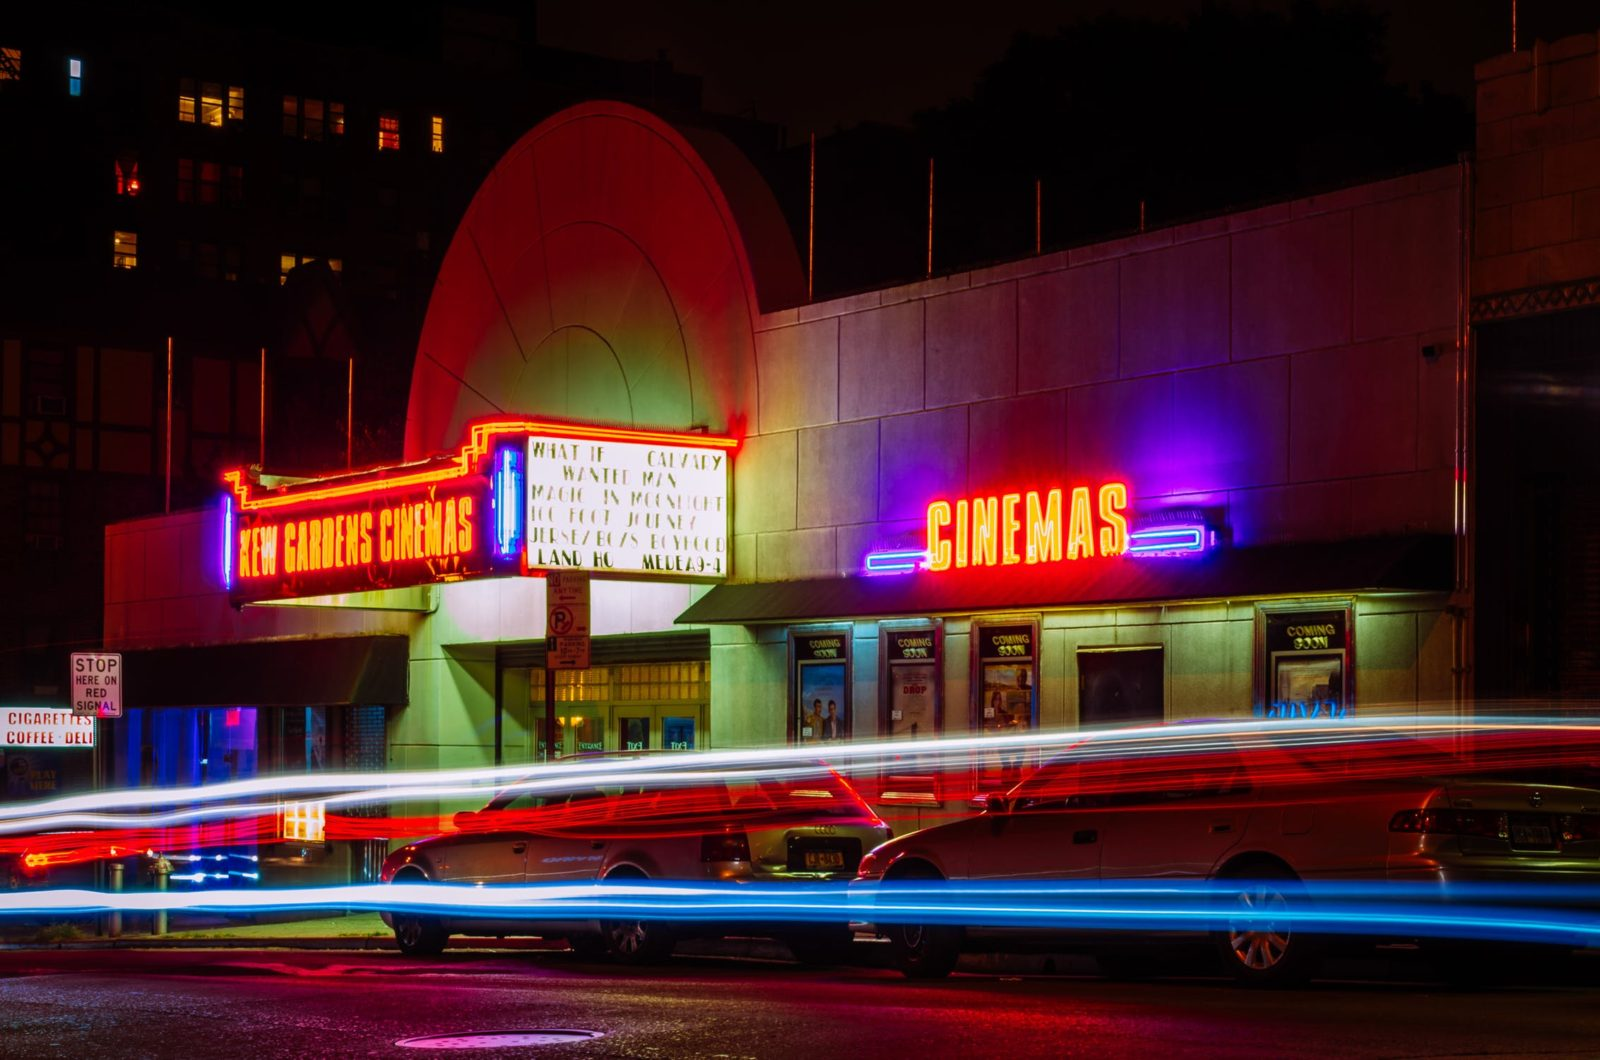 movie cinema at night